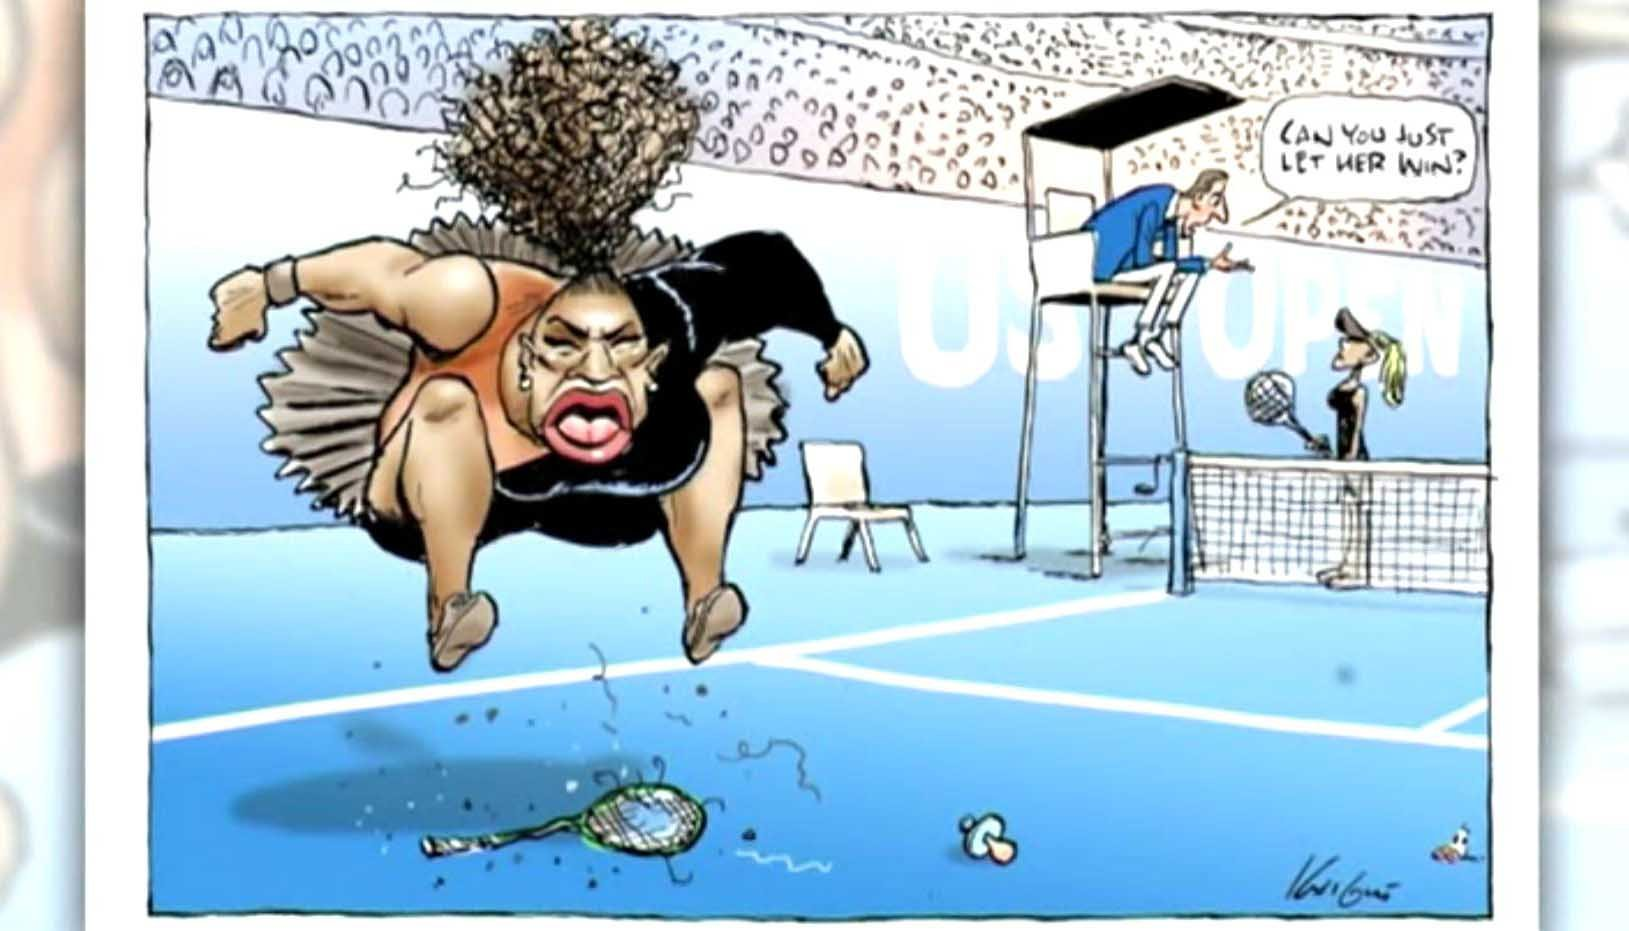 An Australian newspaper has doubled down on a cartoon of Serena Williams widely denounced as racist both at home and abroad. (Source: Nine Network/The Herald Sun/CNN)